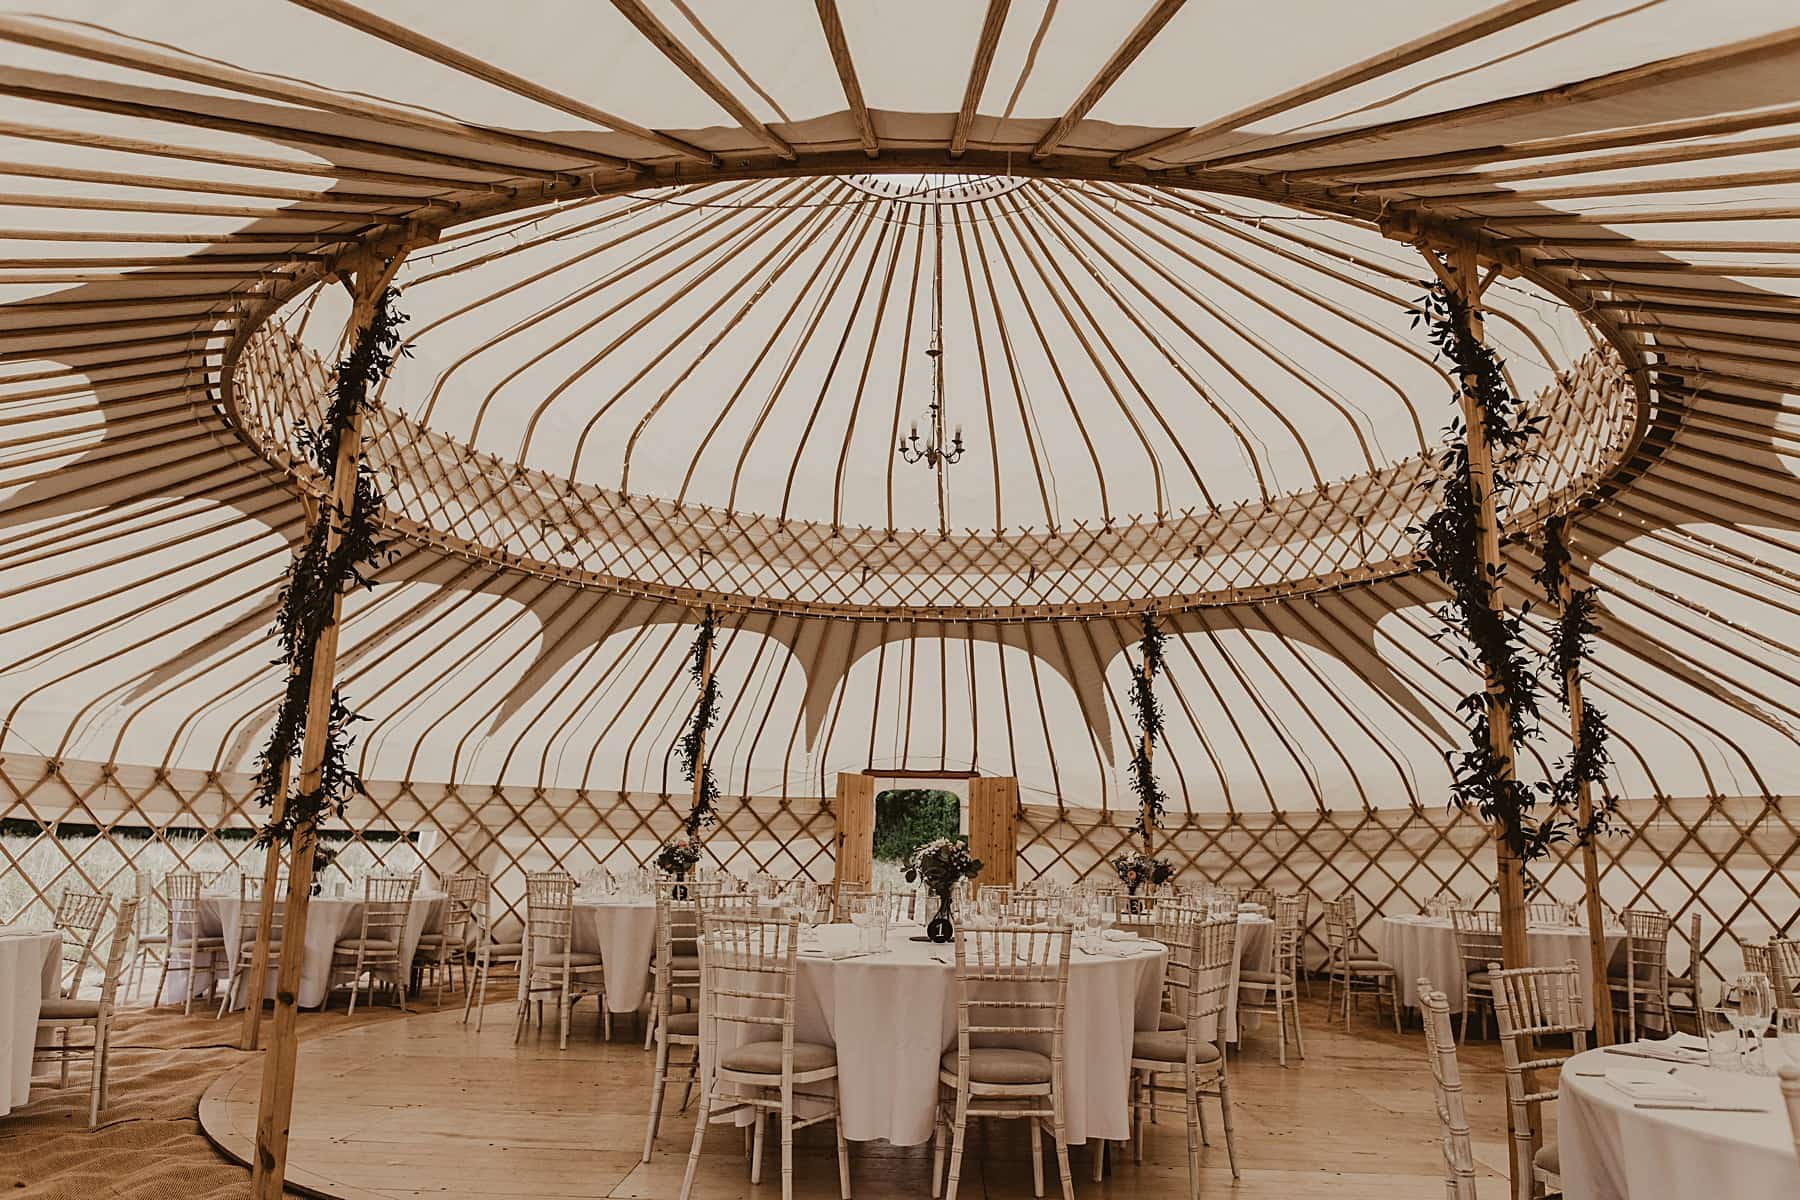 Interior of yurt- Welsh wedding photographer